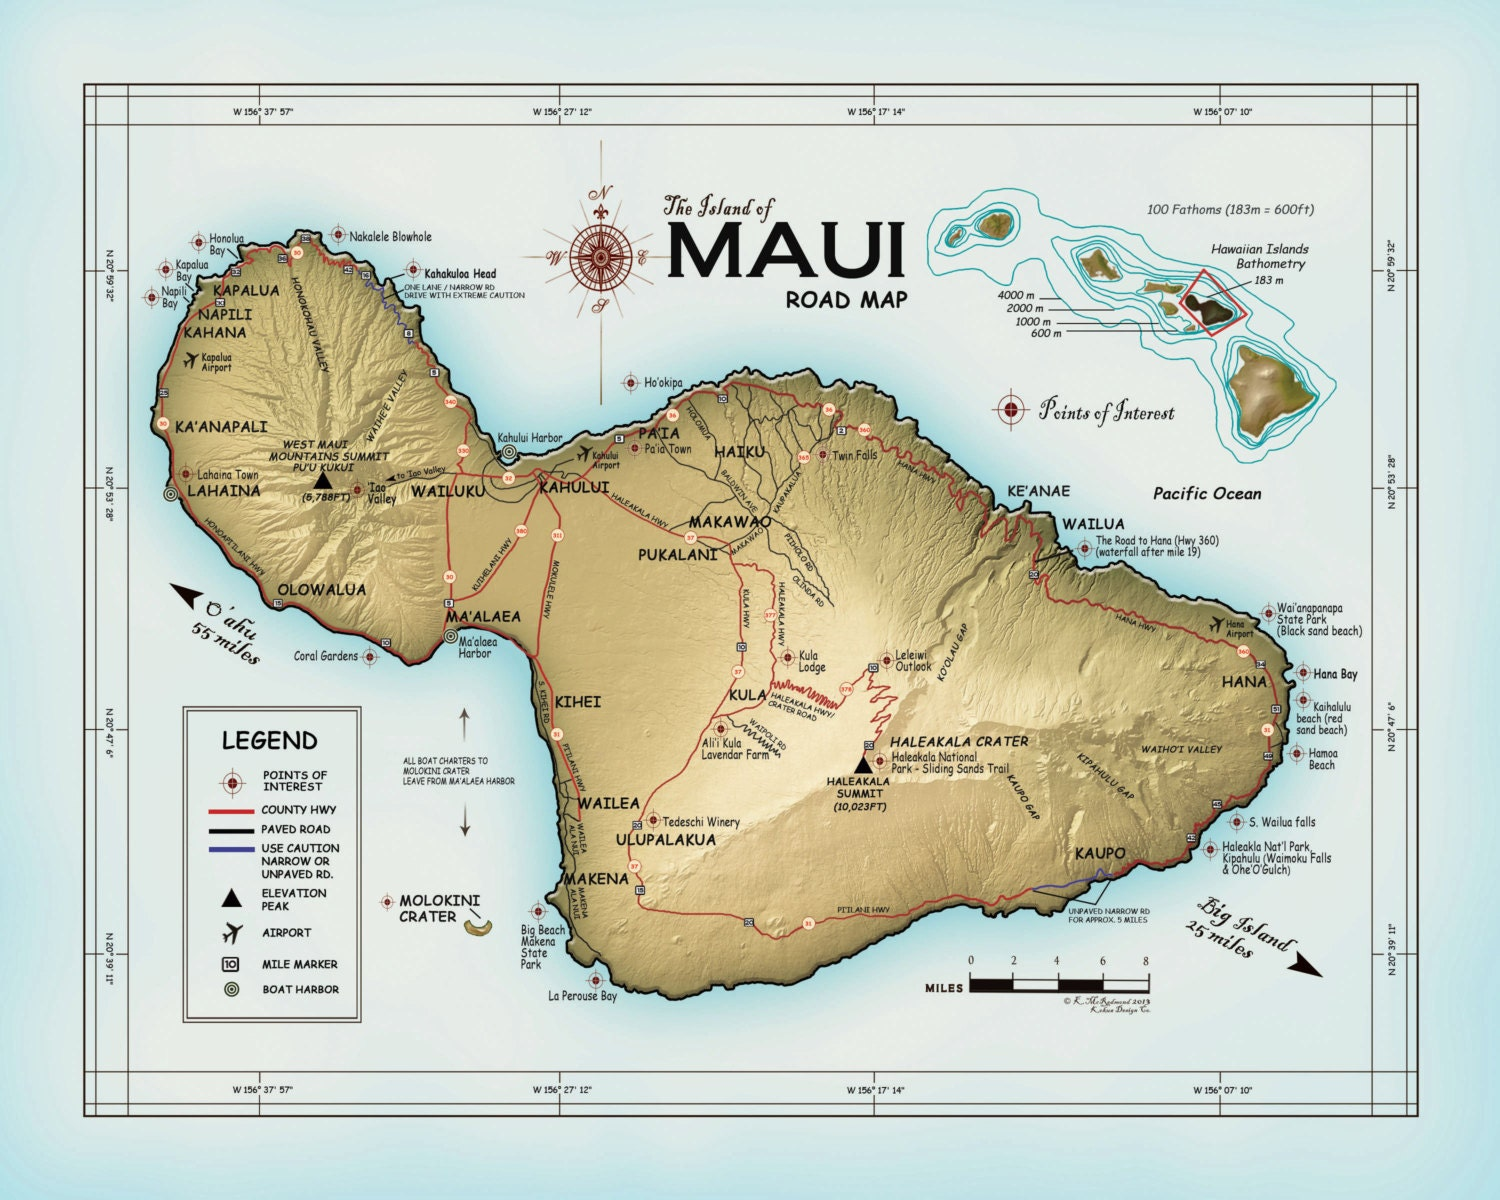 The island of maui atlas inspired zoom thecheapjerseys Image collections